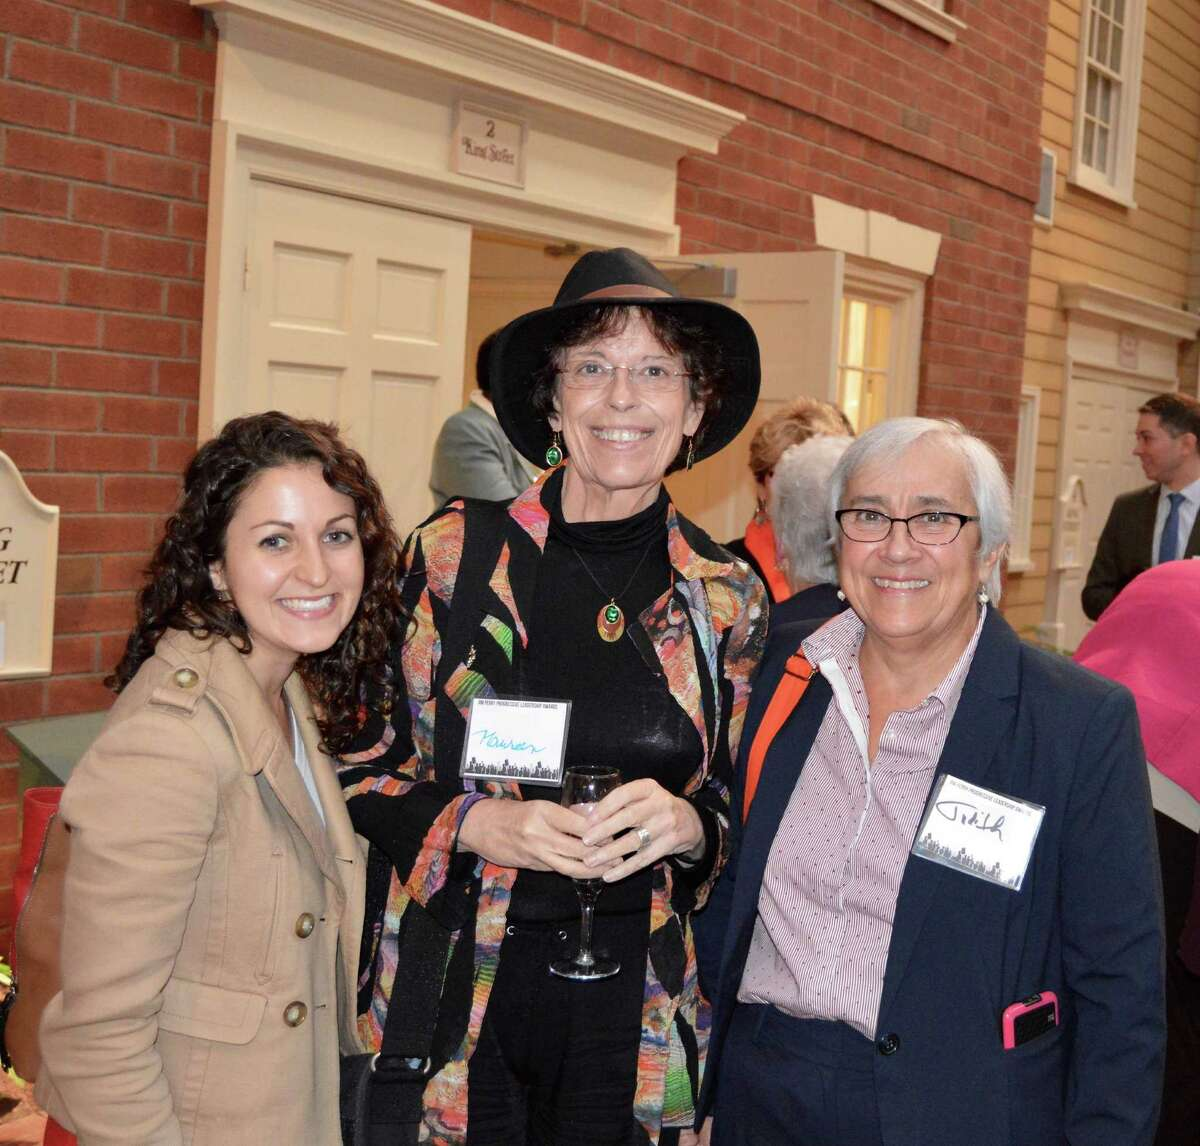 Were you Seen at the Citizen Action 2015 Annual Jim Perry Progressive Leadership Awards event at The Desmond in Colonie on Wednesday, Oct. 7, 2015?